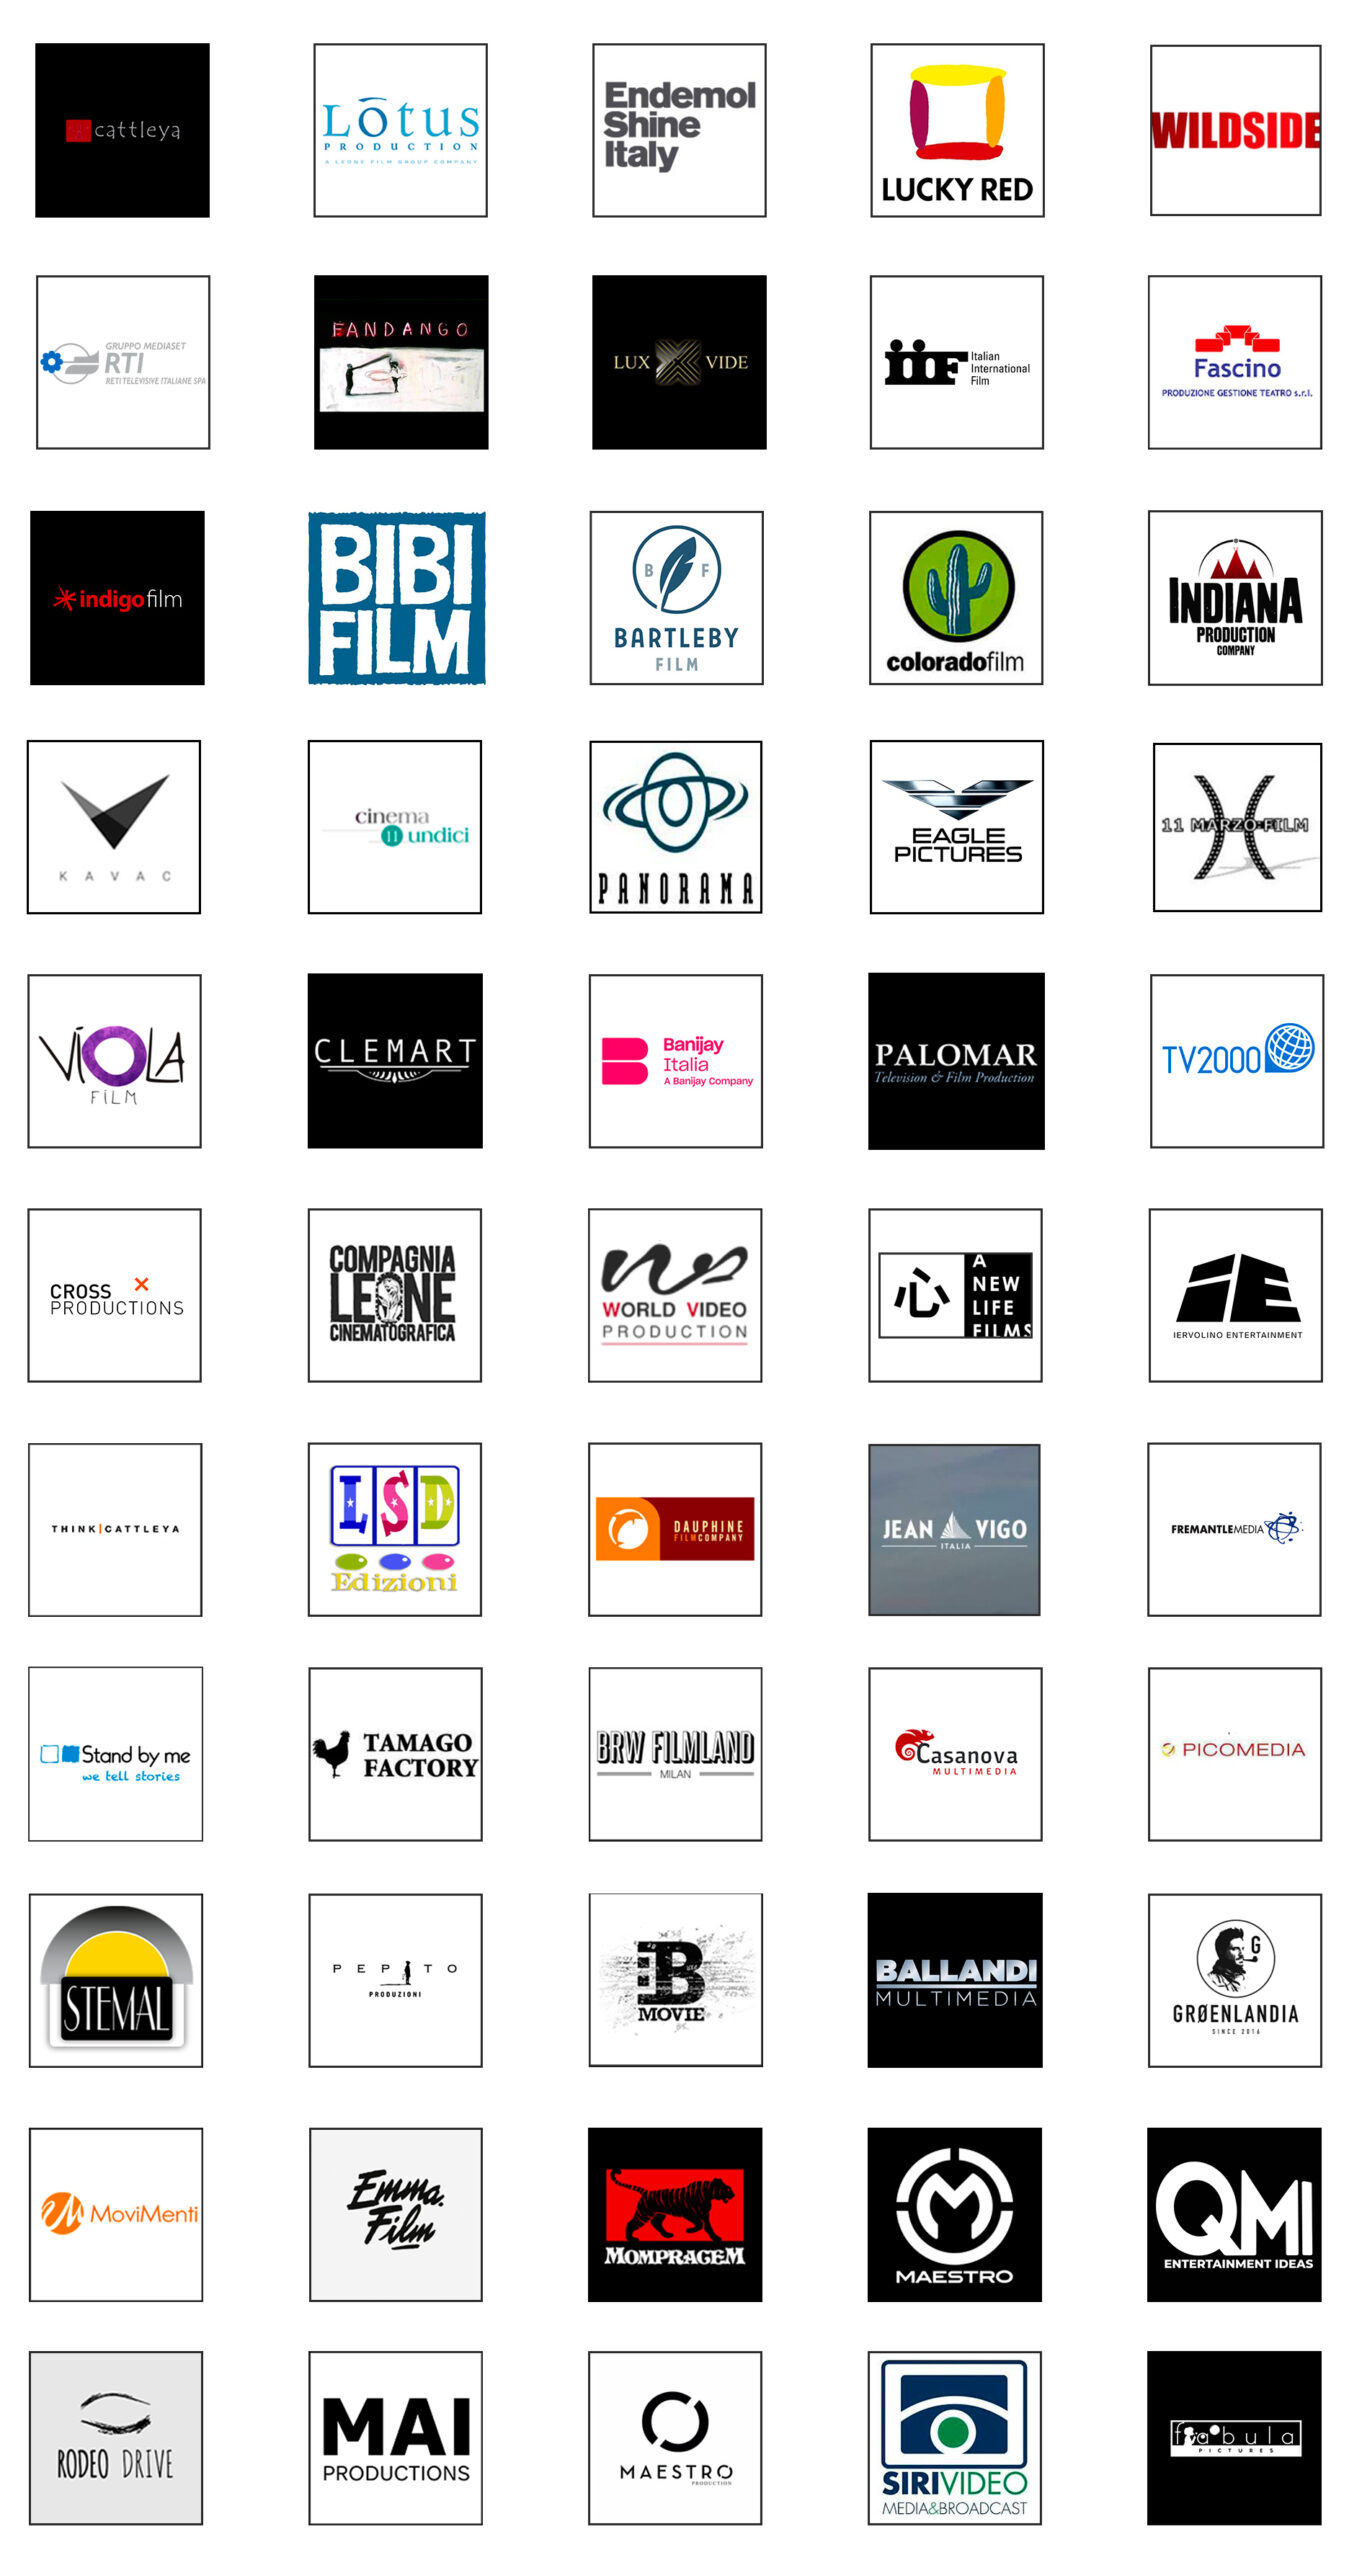 Rental film industry - clienti